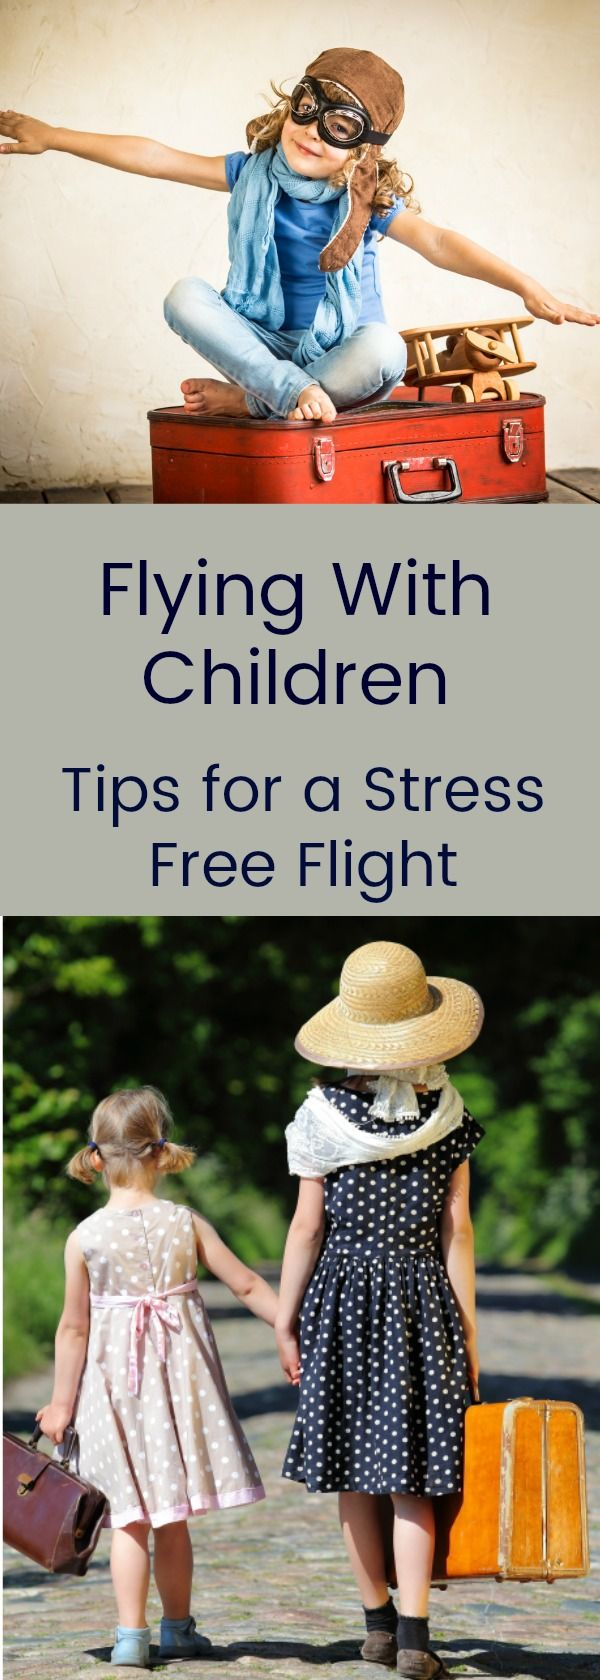 Flying with your children? This practical guide offers tips from leaving your house to reaching your destination so that everyone has an enjoyable experience.